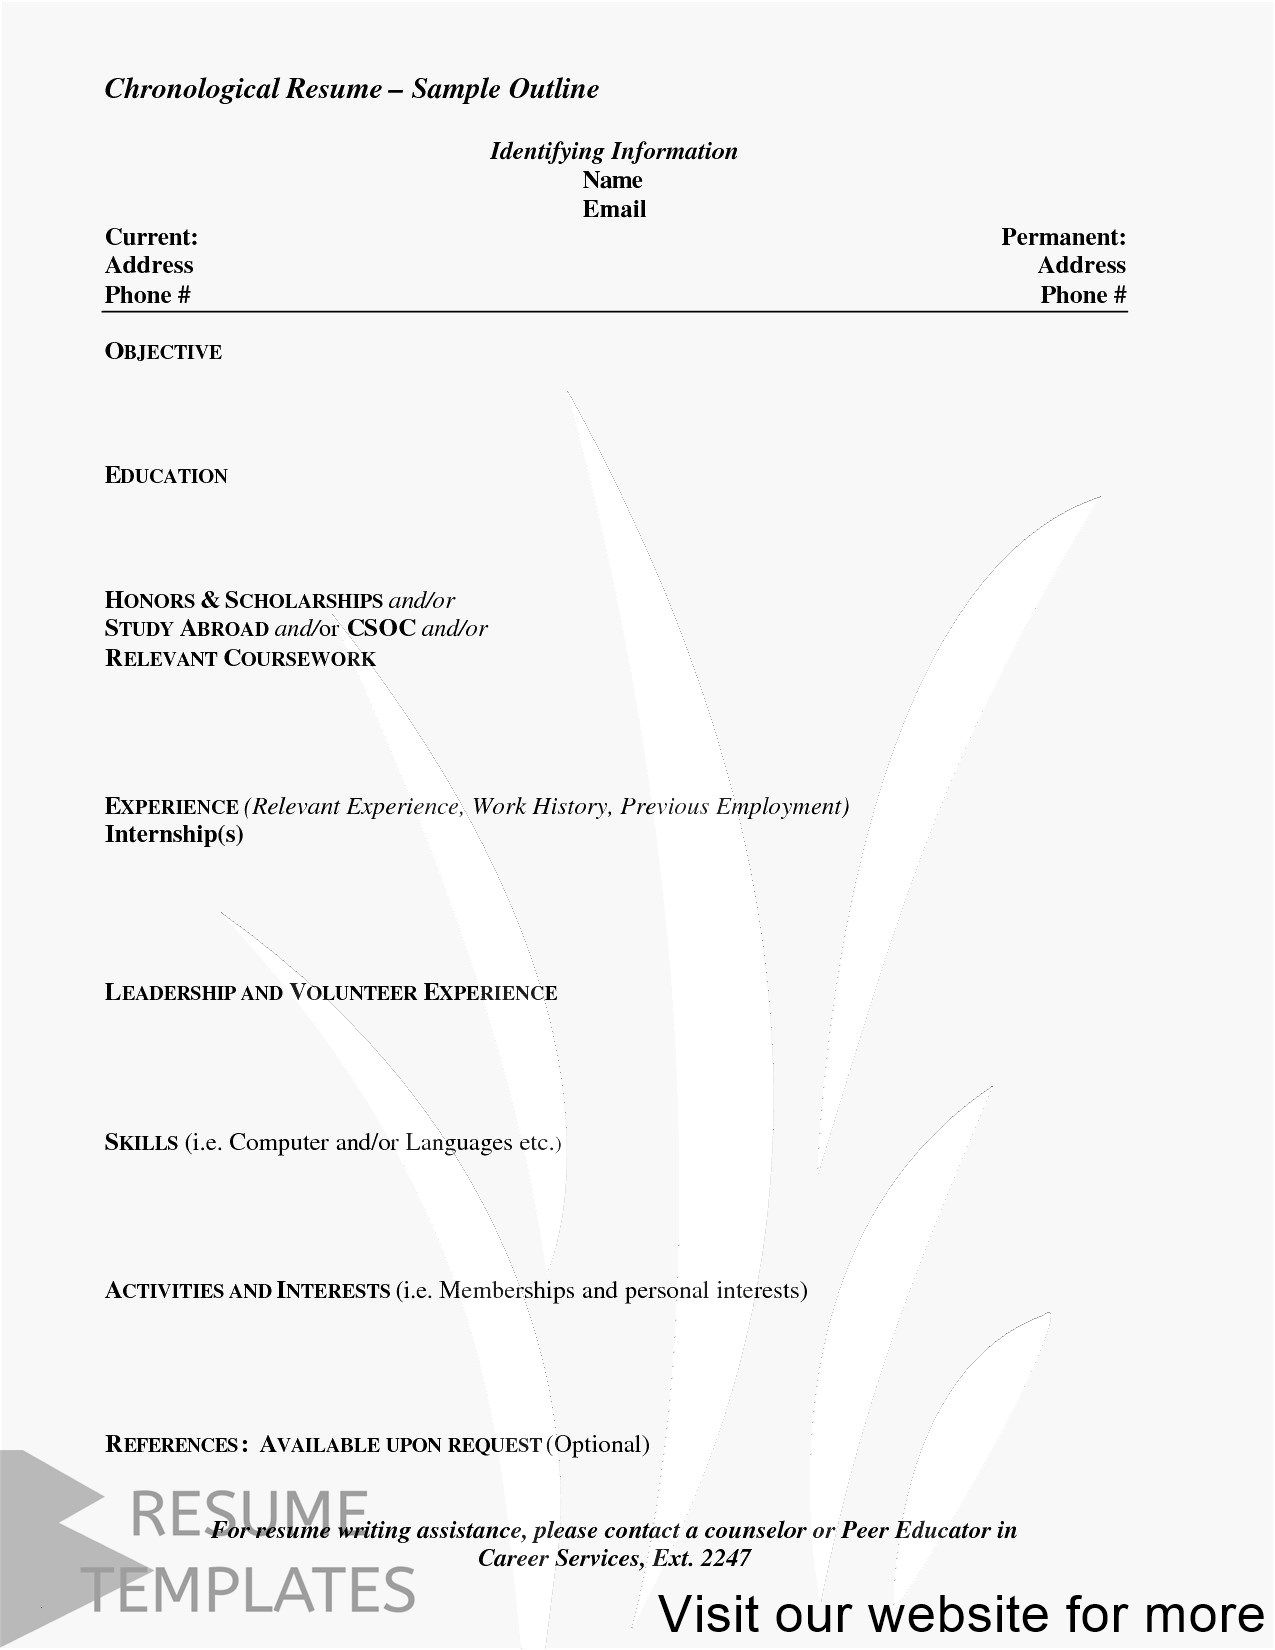 Resume Template Free Resume Template Professional Download